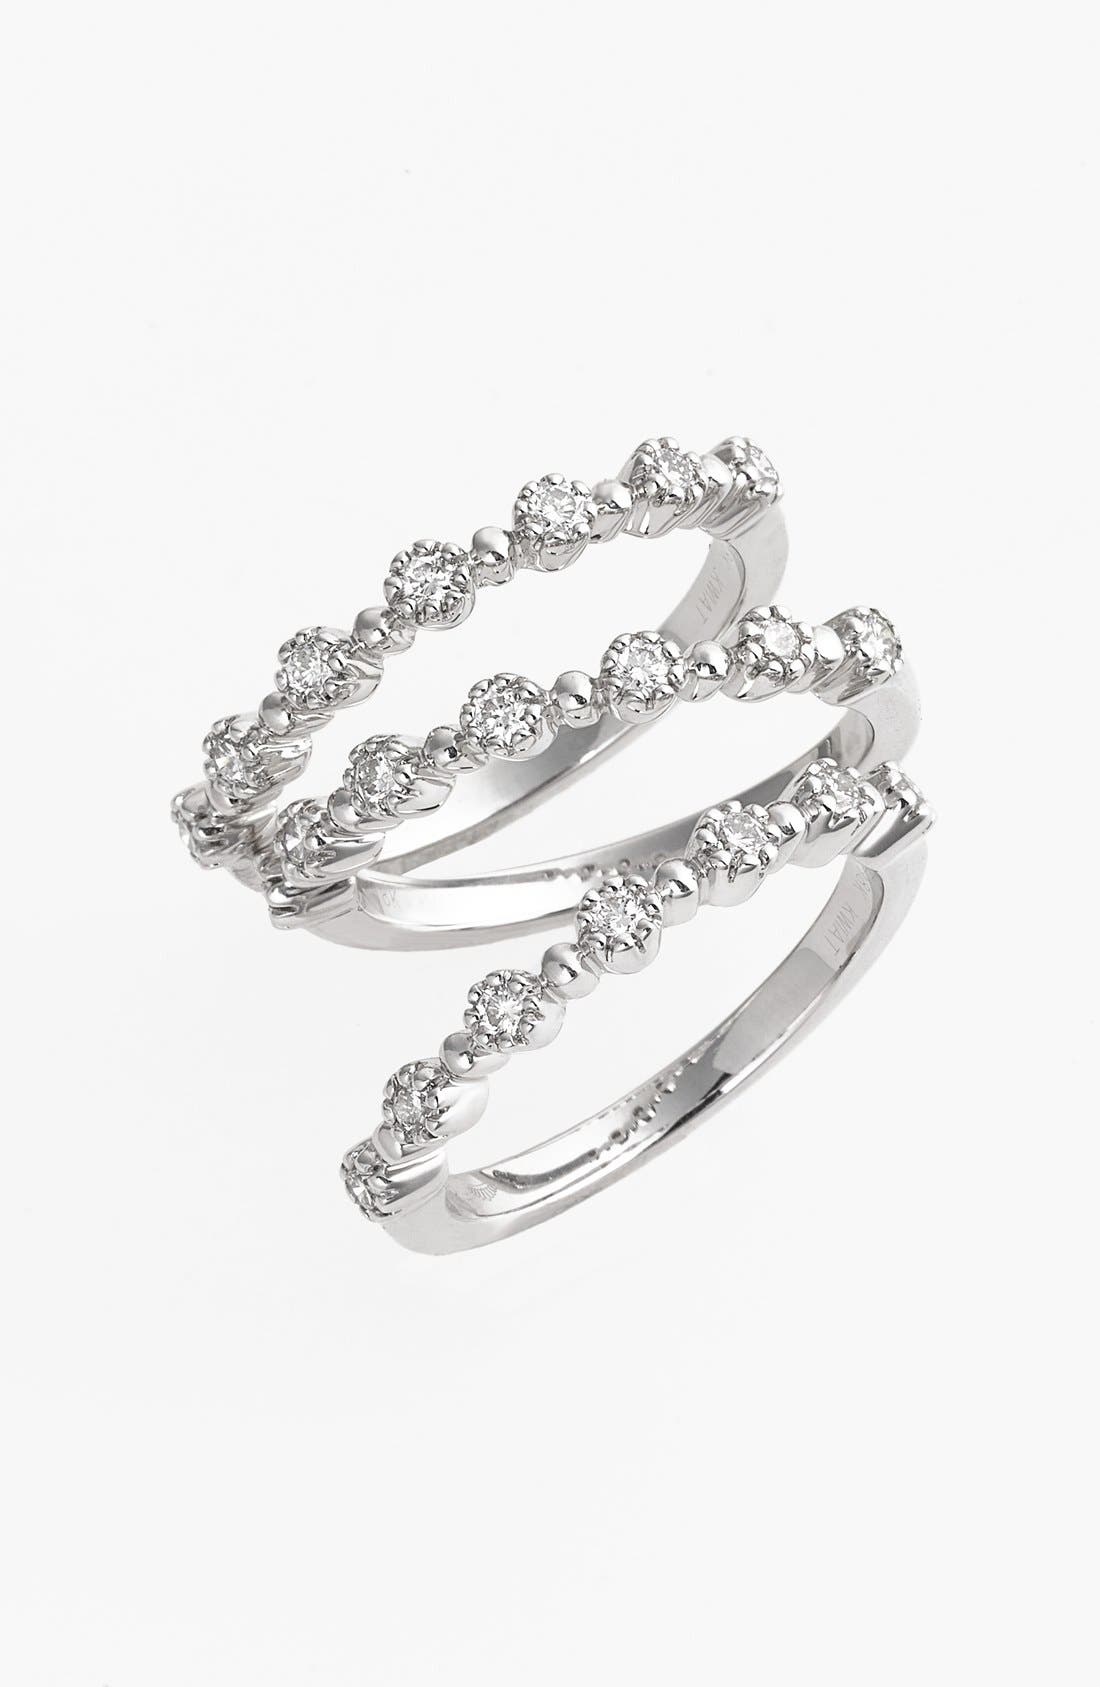 Alternate Image 1 Selected - Kwiat 'Stardust' Diamond Stackable Rings (Set of 3)